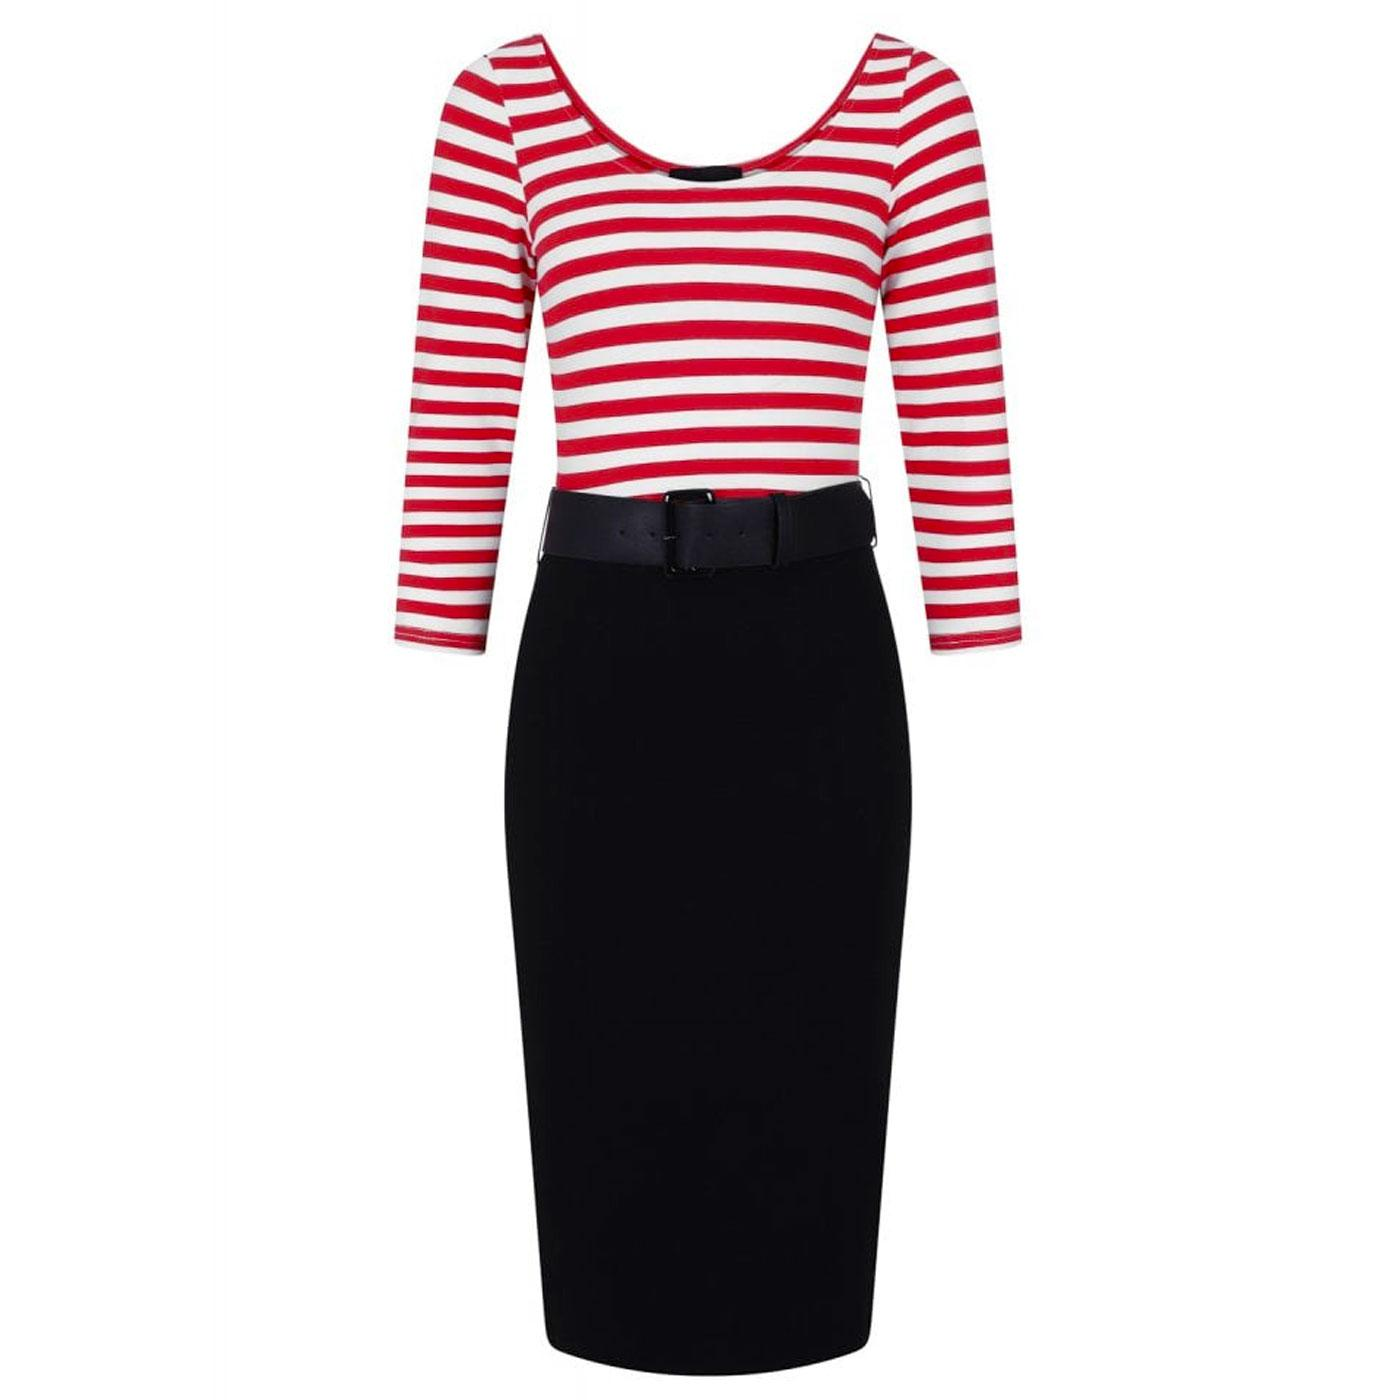 Manuela COLLECTIF Striped Pencil Dress BLACK/RED